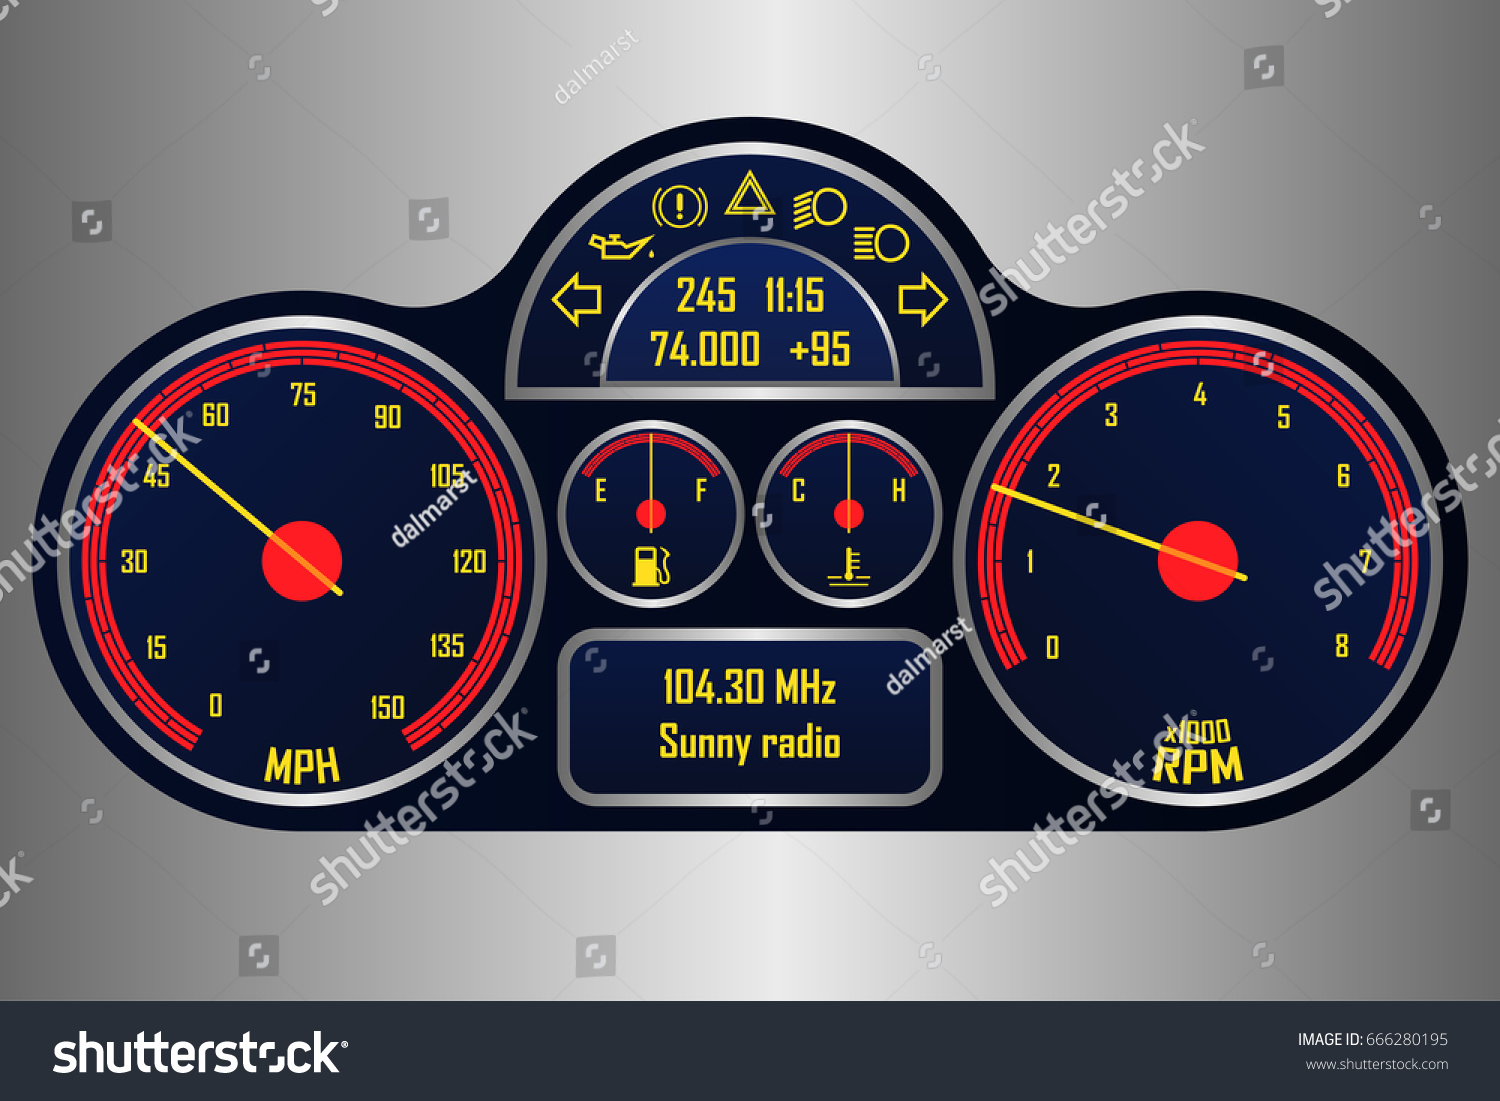 Automotive Gauge Cluster Vector Illustration Racing Stock Vector - Car signs on dashboardcar dashboard signs speedometer tachometer fuel and temperature